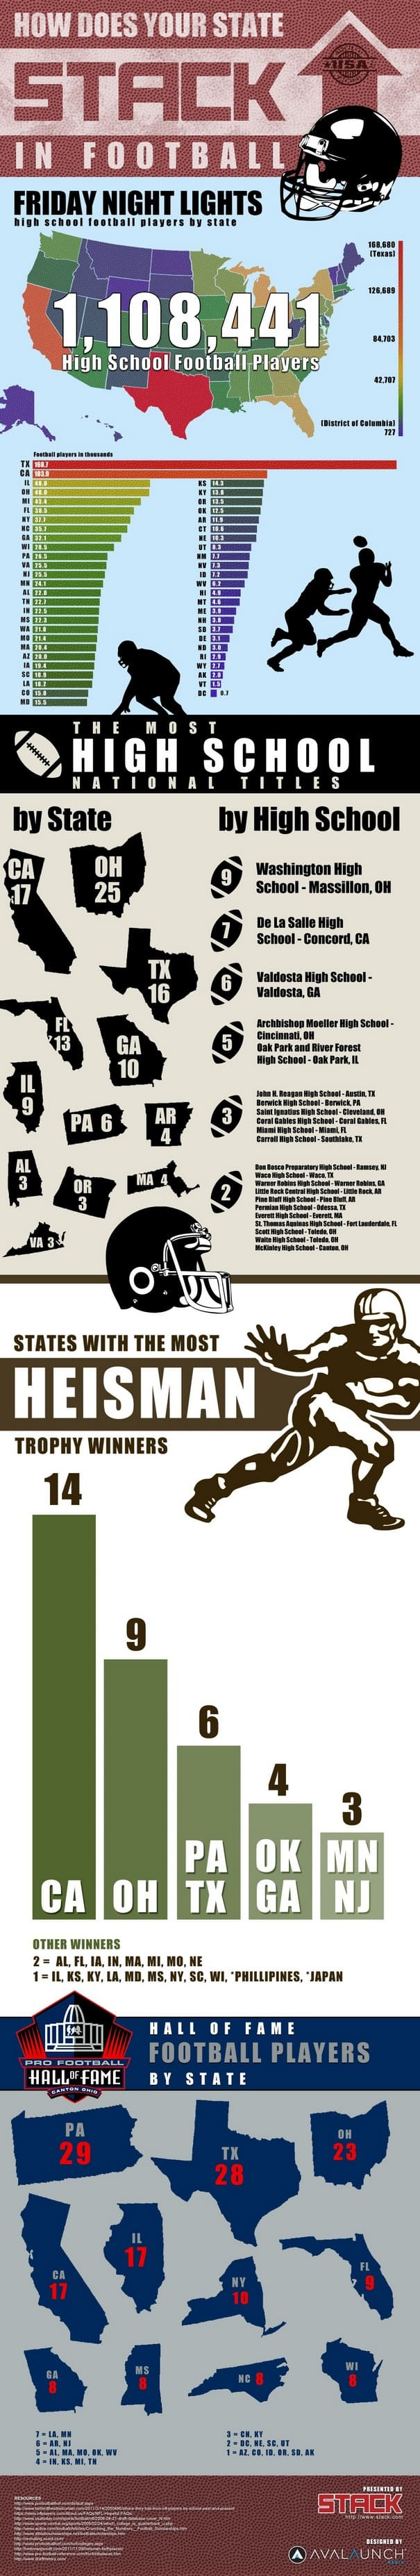 Ranking the Best Football States Infographic